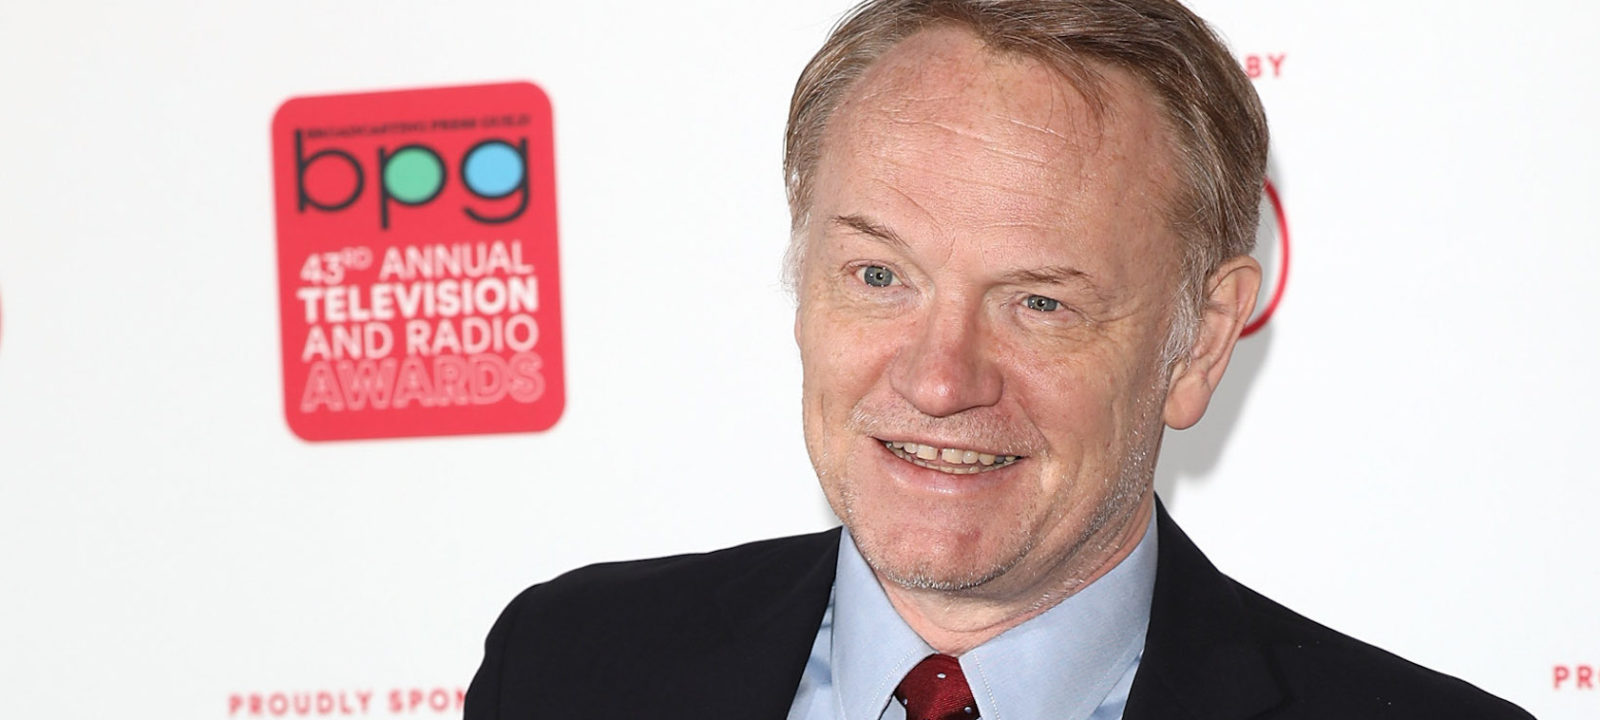 Jared Harris attends the Broadcasting Press Guild Television & Radio Awards at Theatre Royal on March 17, 2017 in London, England.